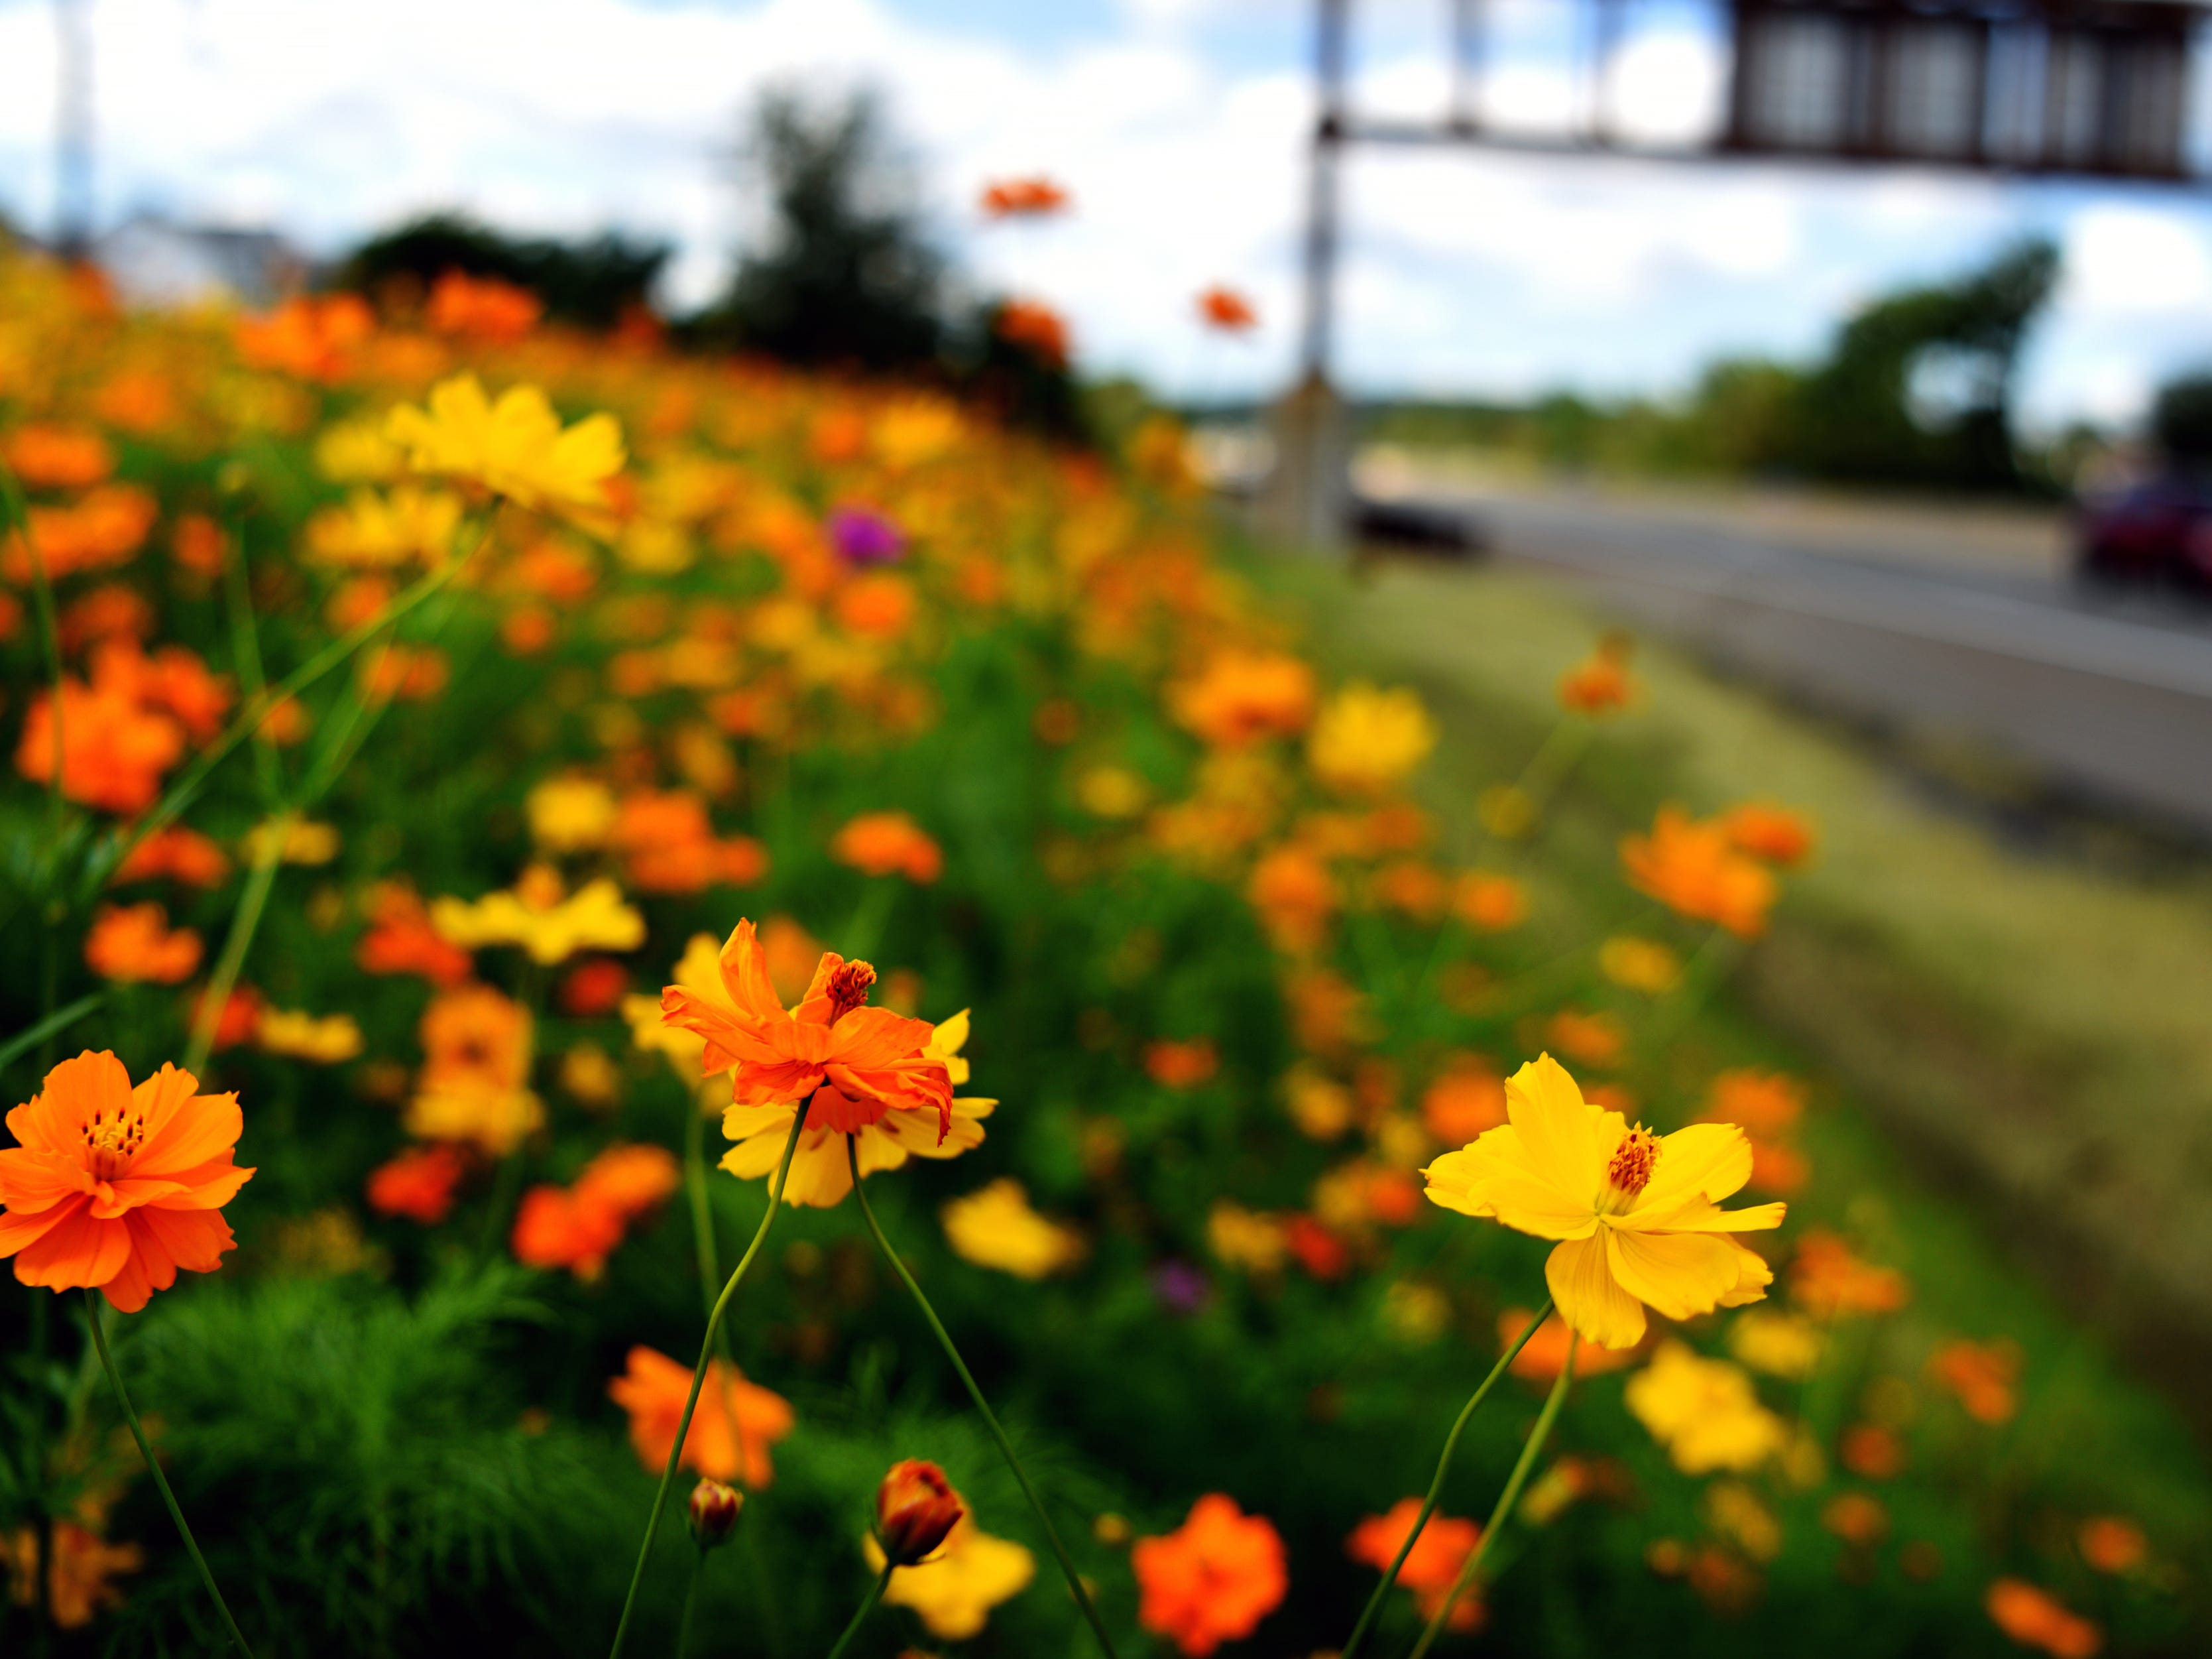 North Jersey highways in bloom: Roadside assistance to pollinators